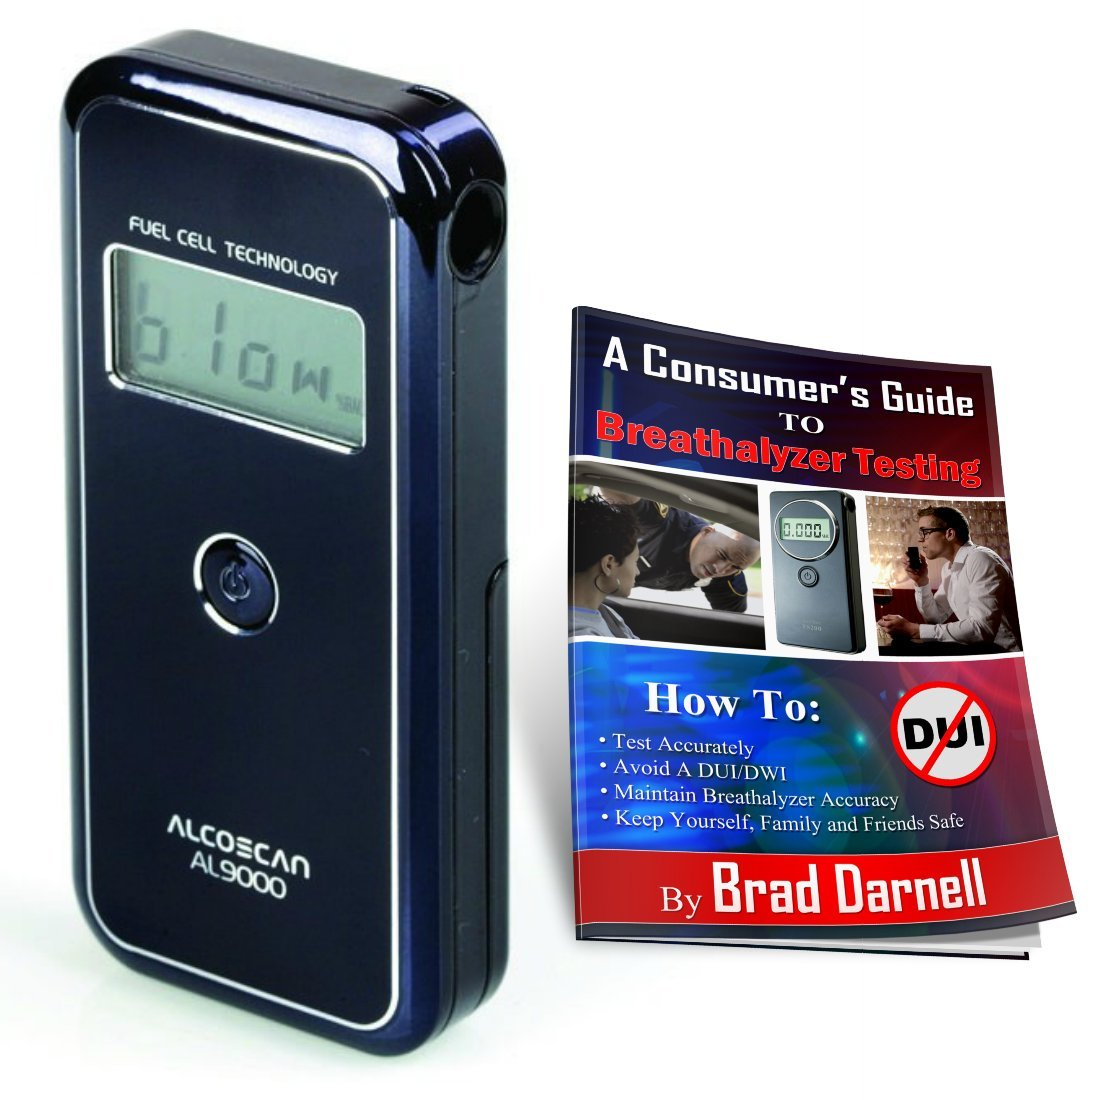 AlcoMate AccuCell AL9000 Alcohol Breathalyzer and FREE Breathalyzer Tester Guide - Wired Magazine ''Editors' Pick'' - Fuel Cell - FREE 2-3 Day Air Shipping!